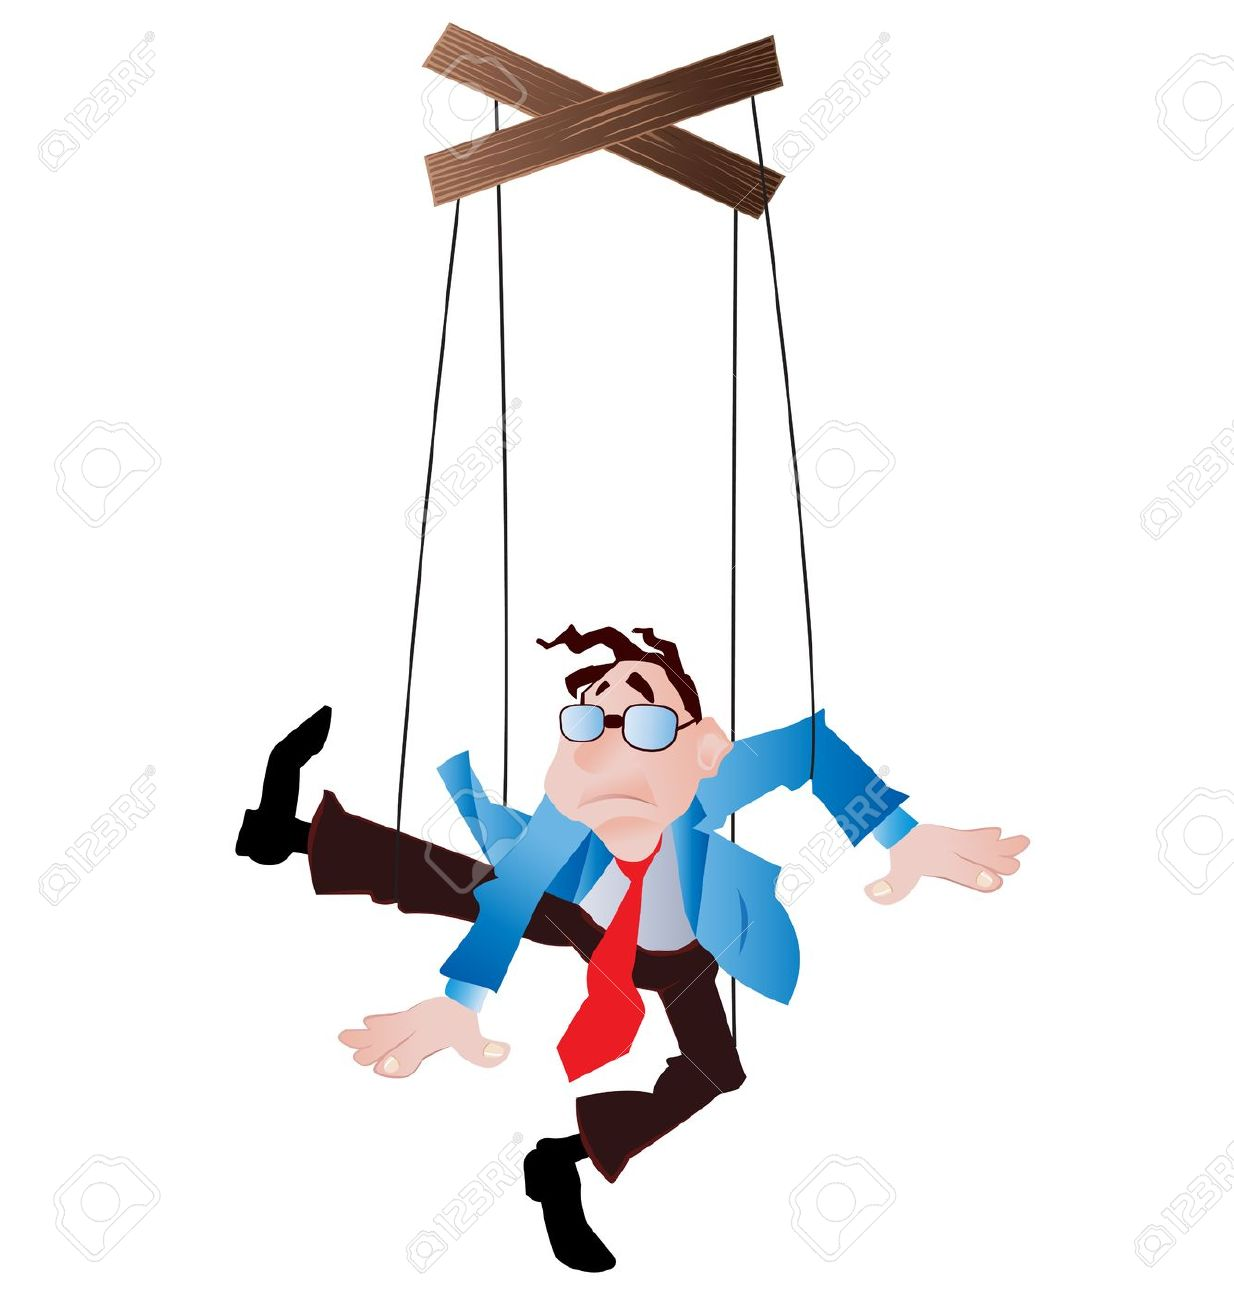 Clip Art Puppet On A String.